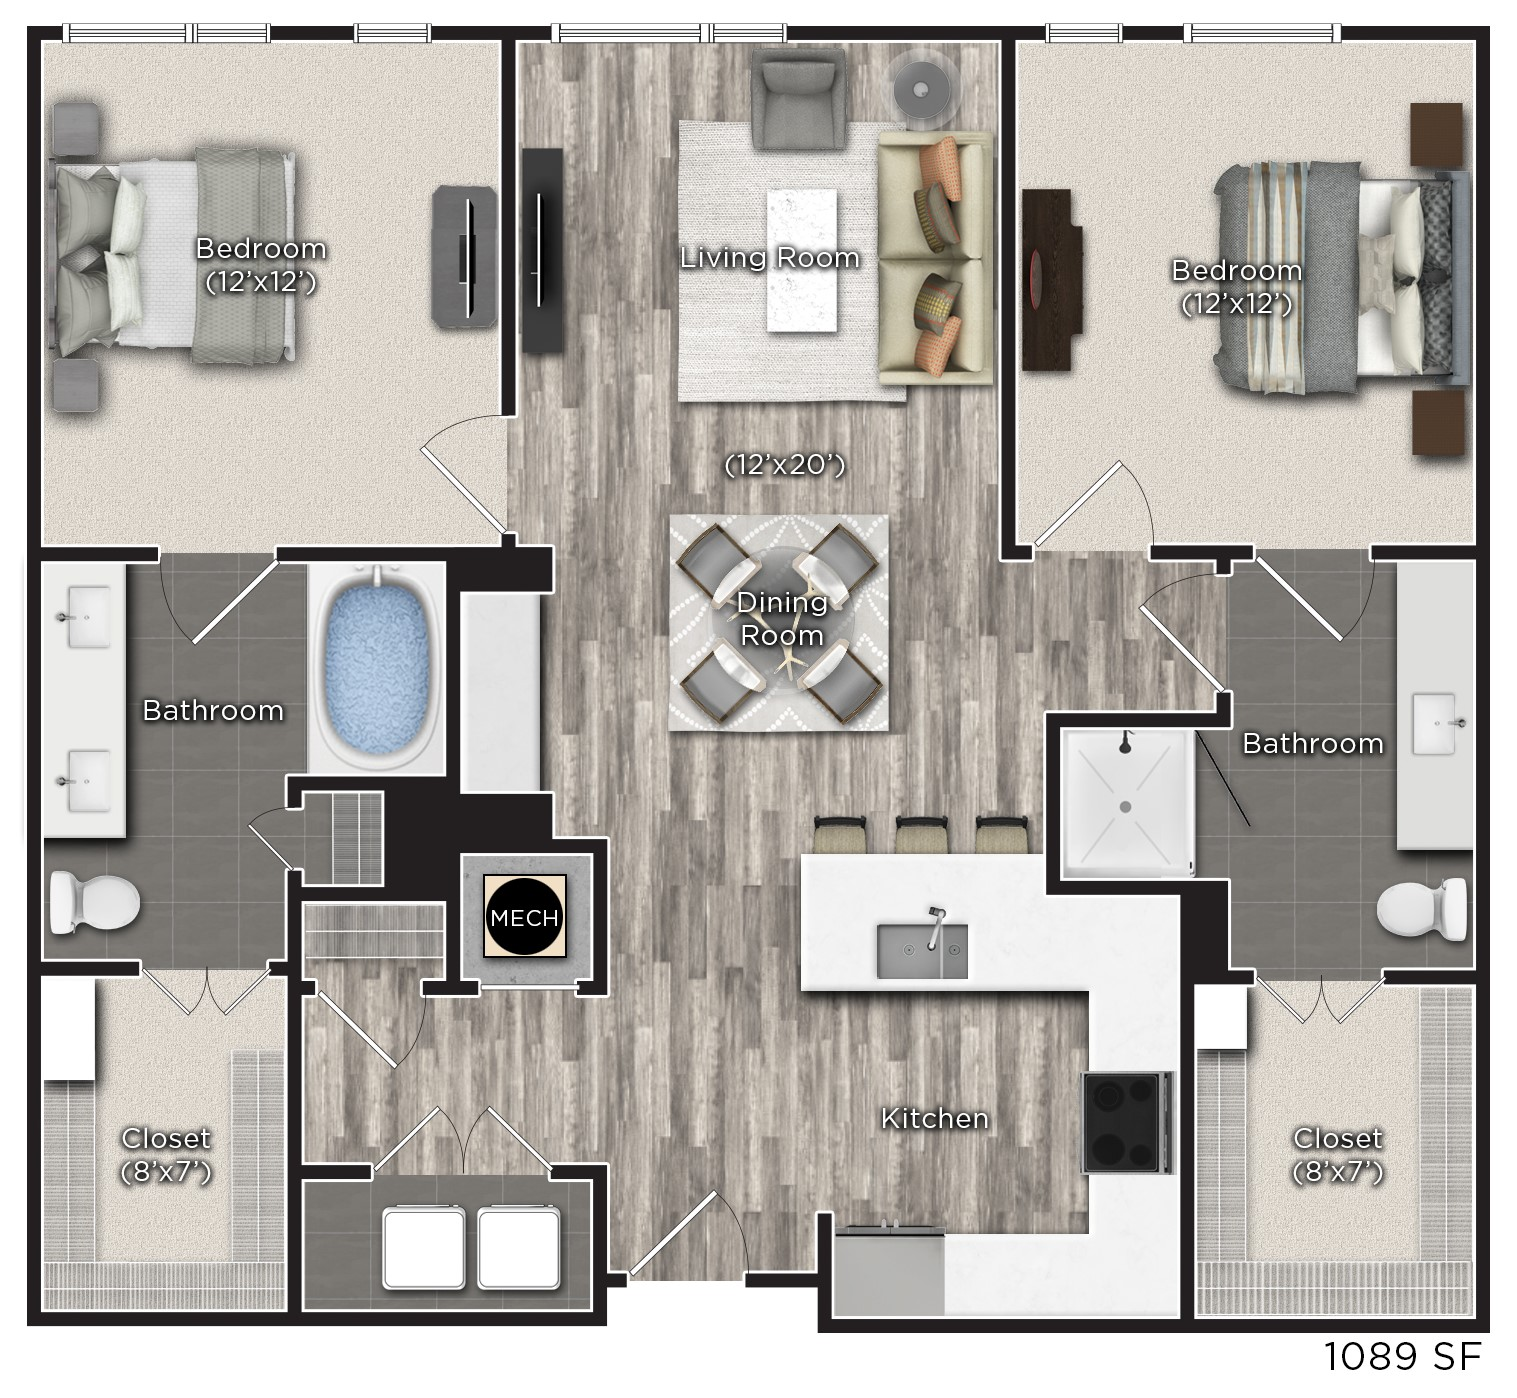 Tens on West - Floorplan - Q